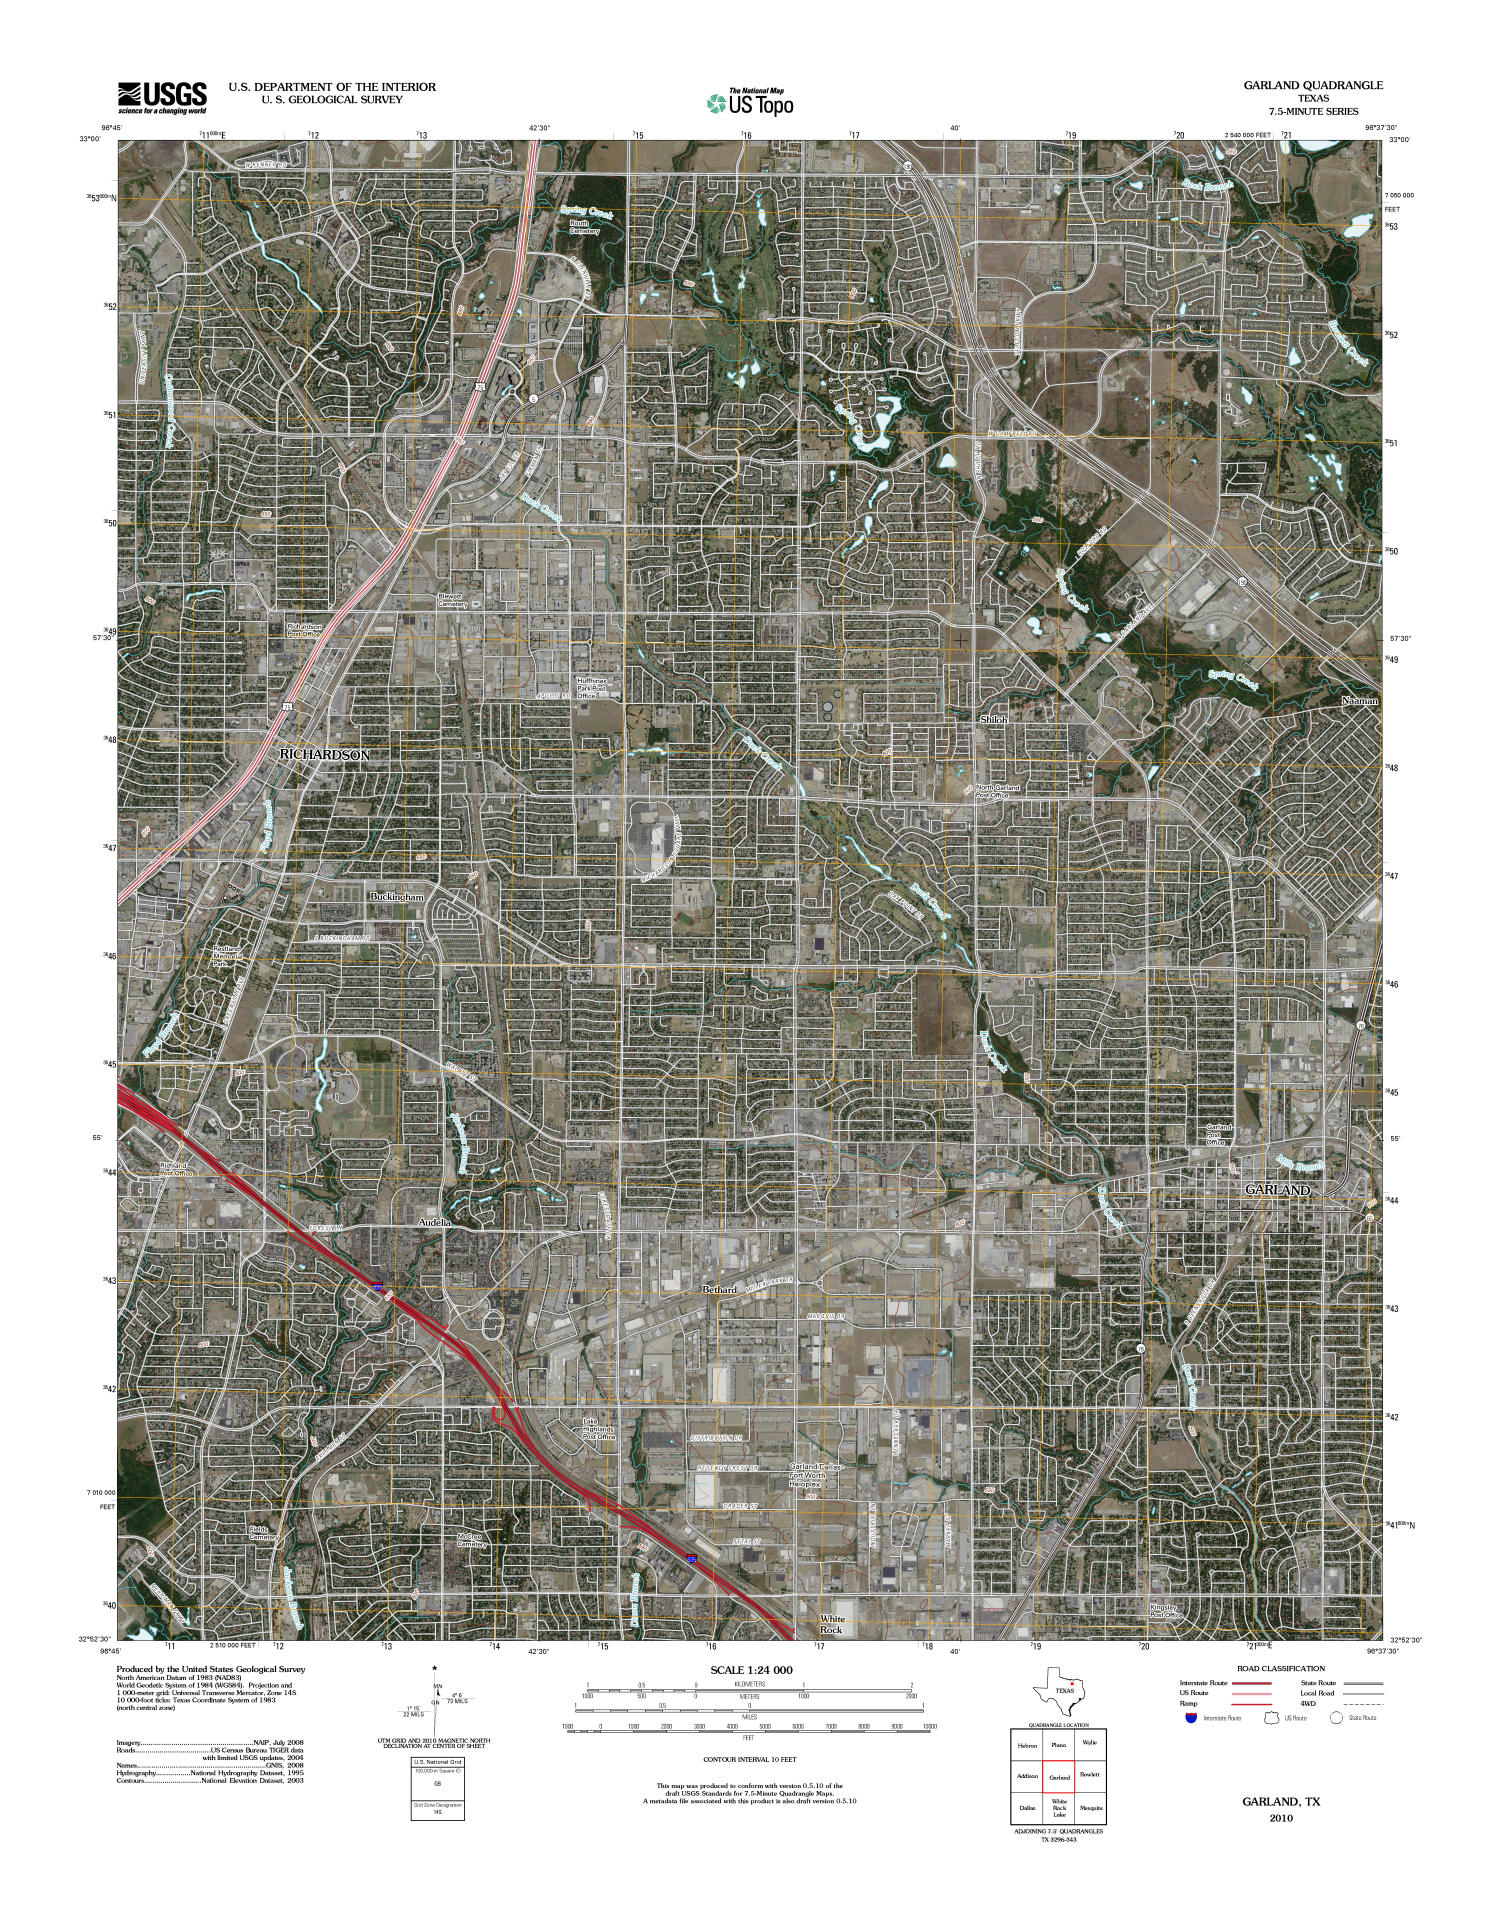 Garland Quadrangle, Satellite image topographic map of a portion of Texas from the United States Geological Survey (USGS) project. The map includes towns, historic or notable sites, bodies of water, and other geologic features. Scale 1:24,000,